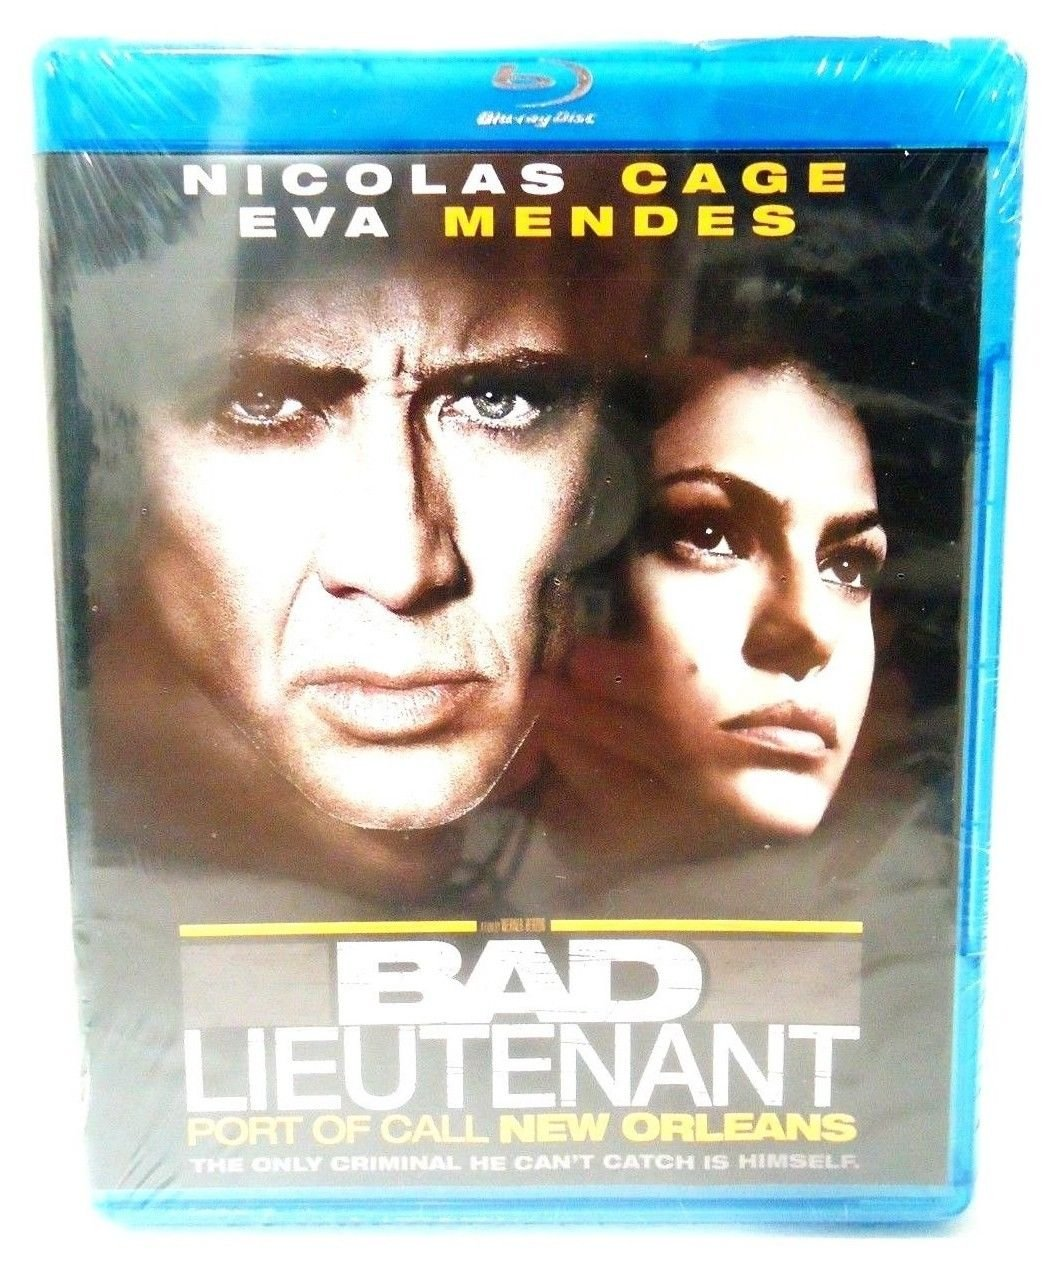 BAD LIEUTENANT - PORT OF CALL - NEW ORLEANS - BLU-RAY - NICOLAS CAGE - BRAND NEW